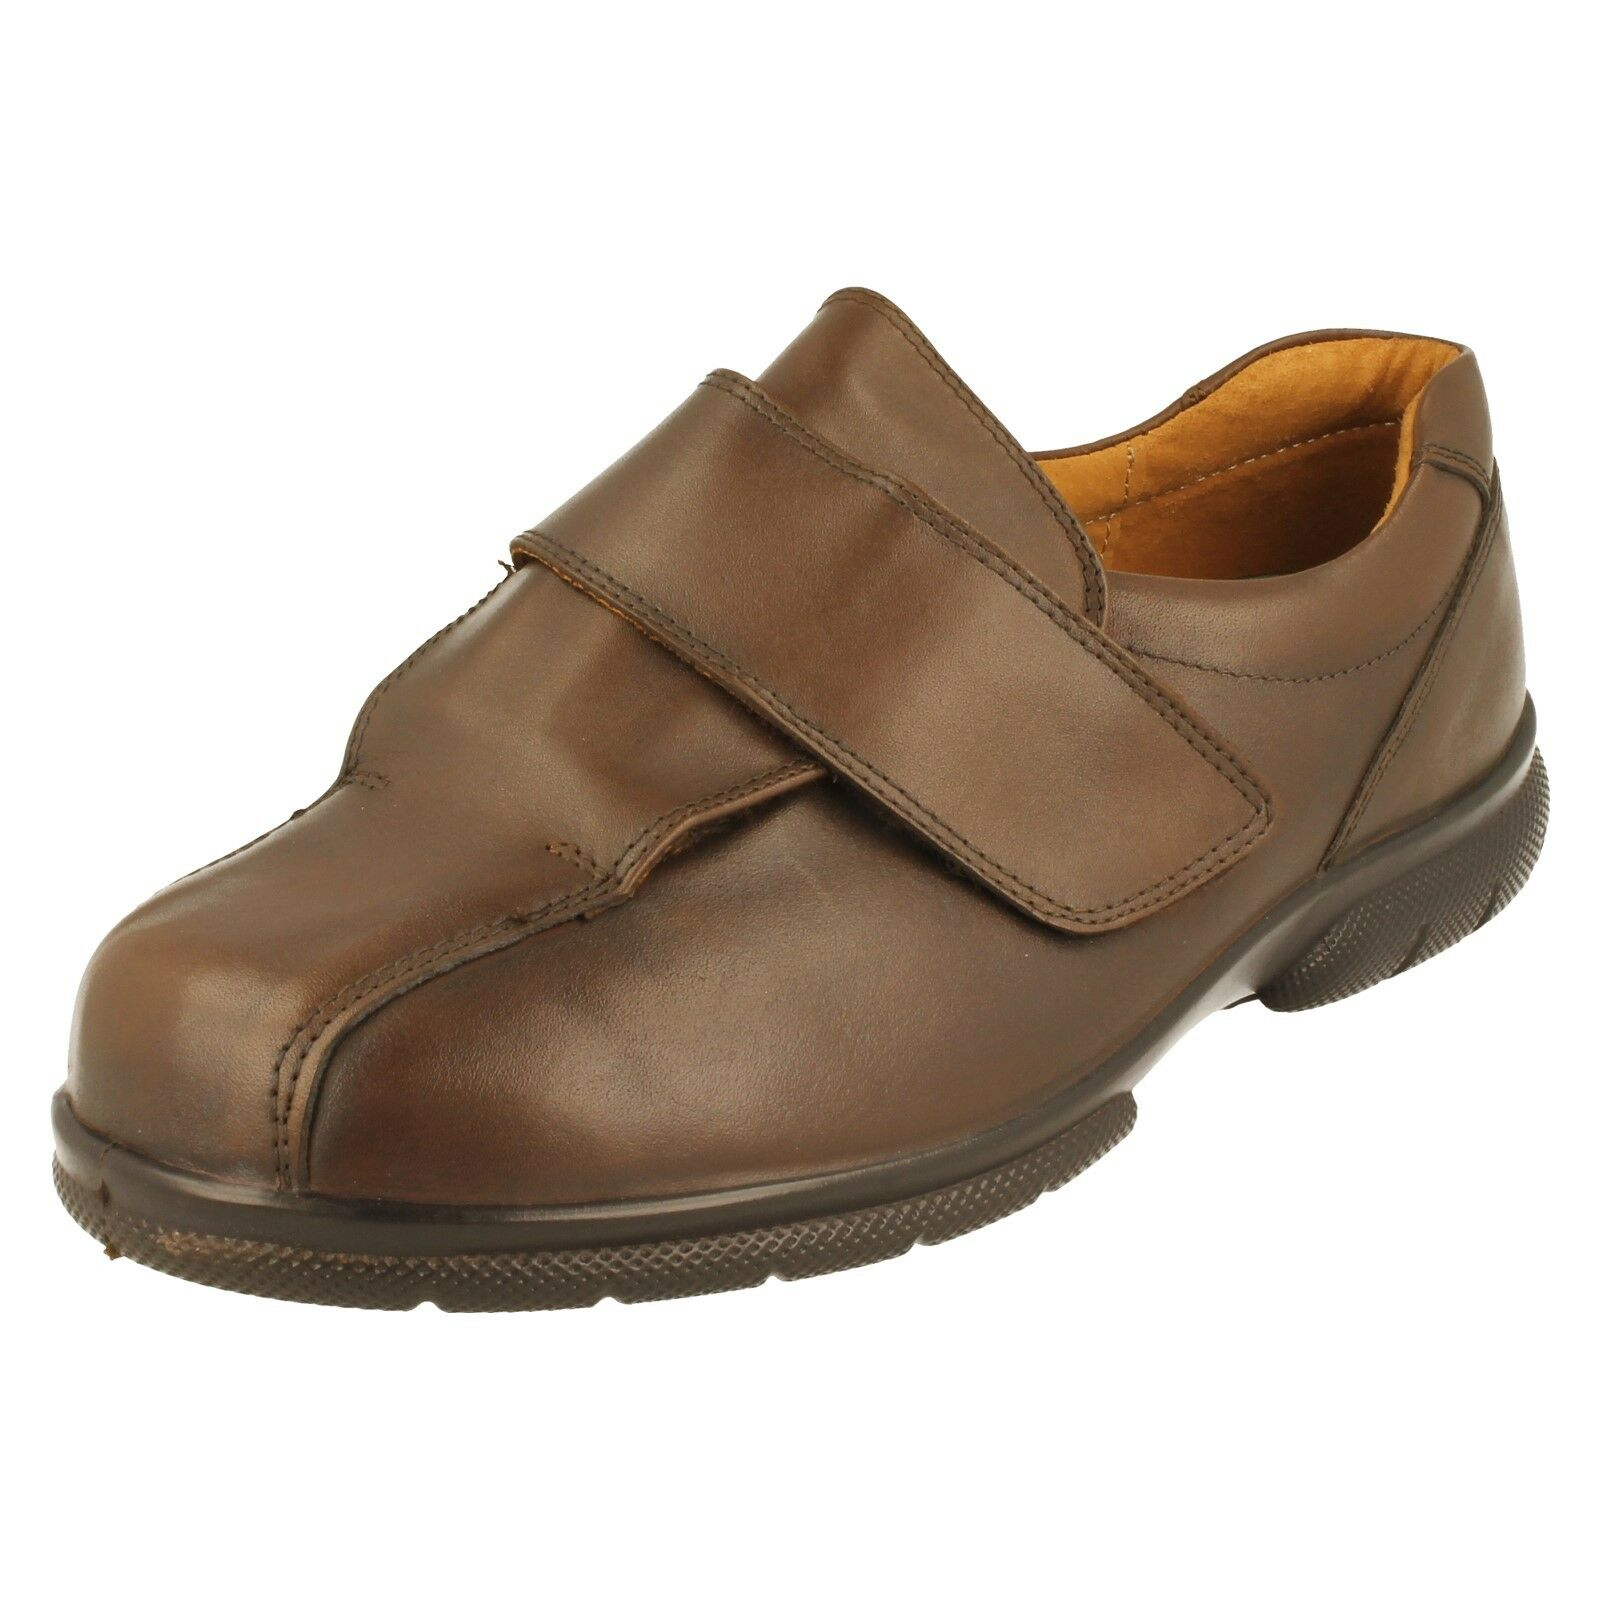 Men's DB shoes Wide Variable Fittings - Josh